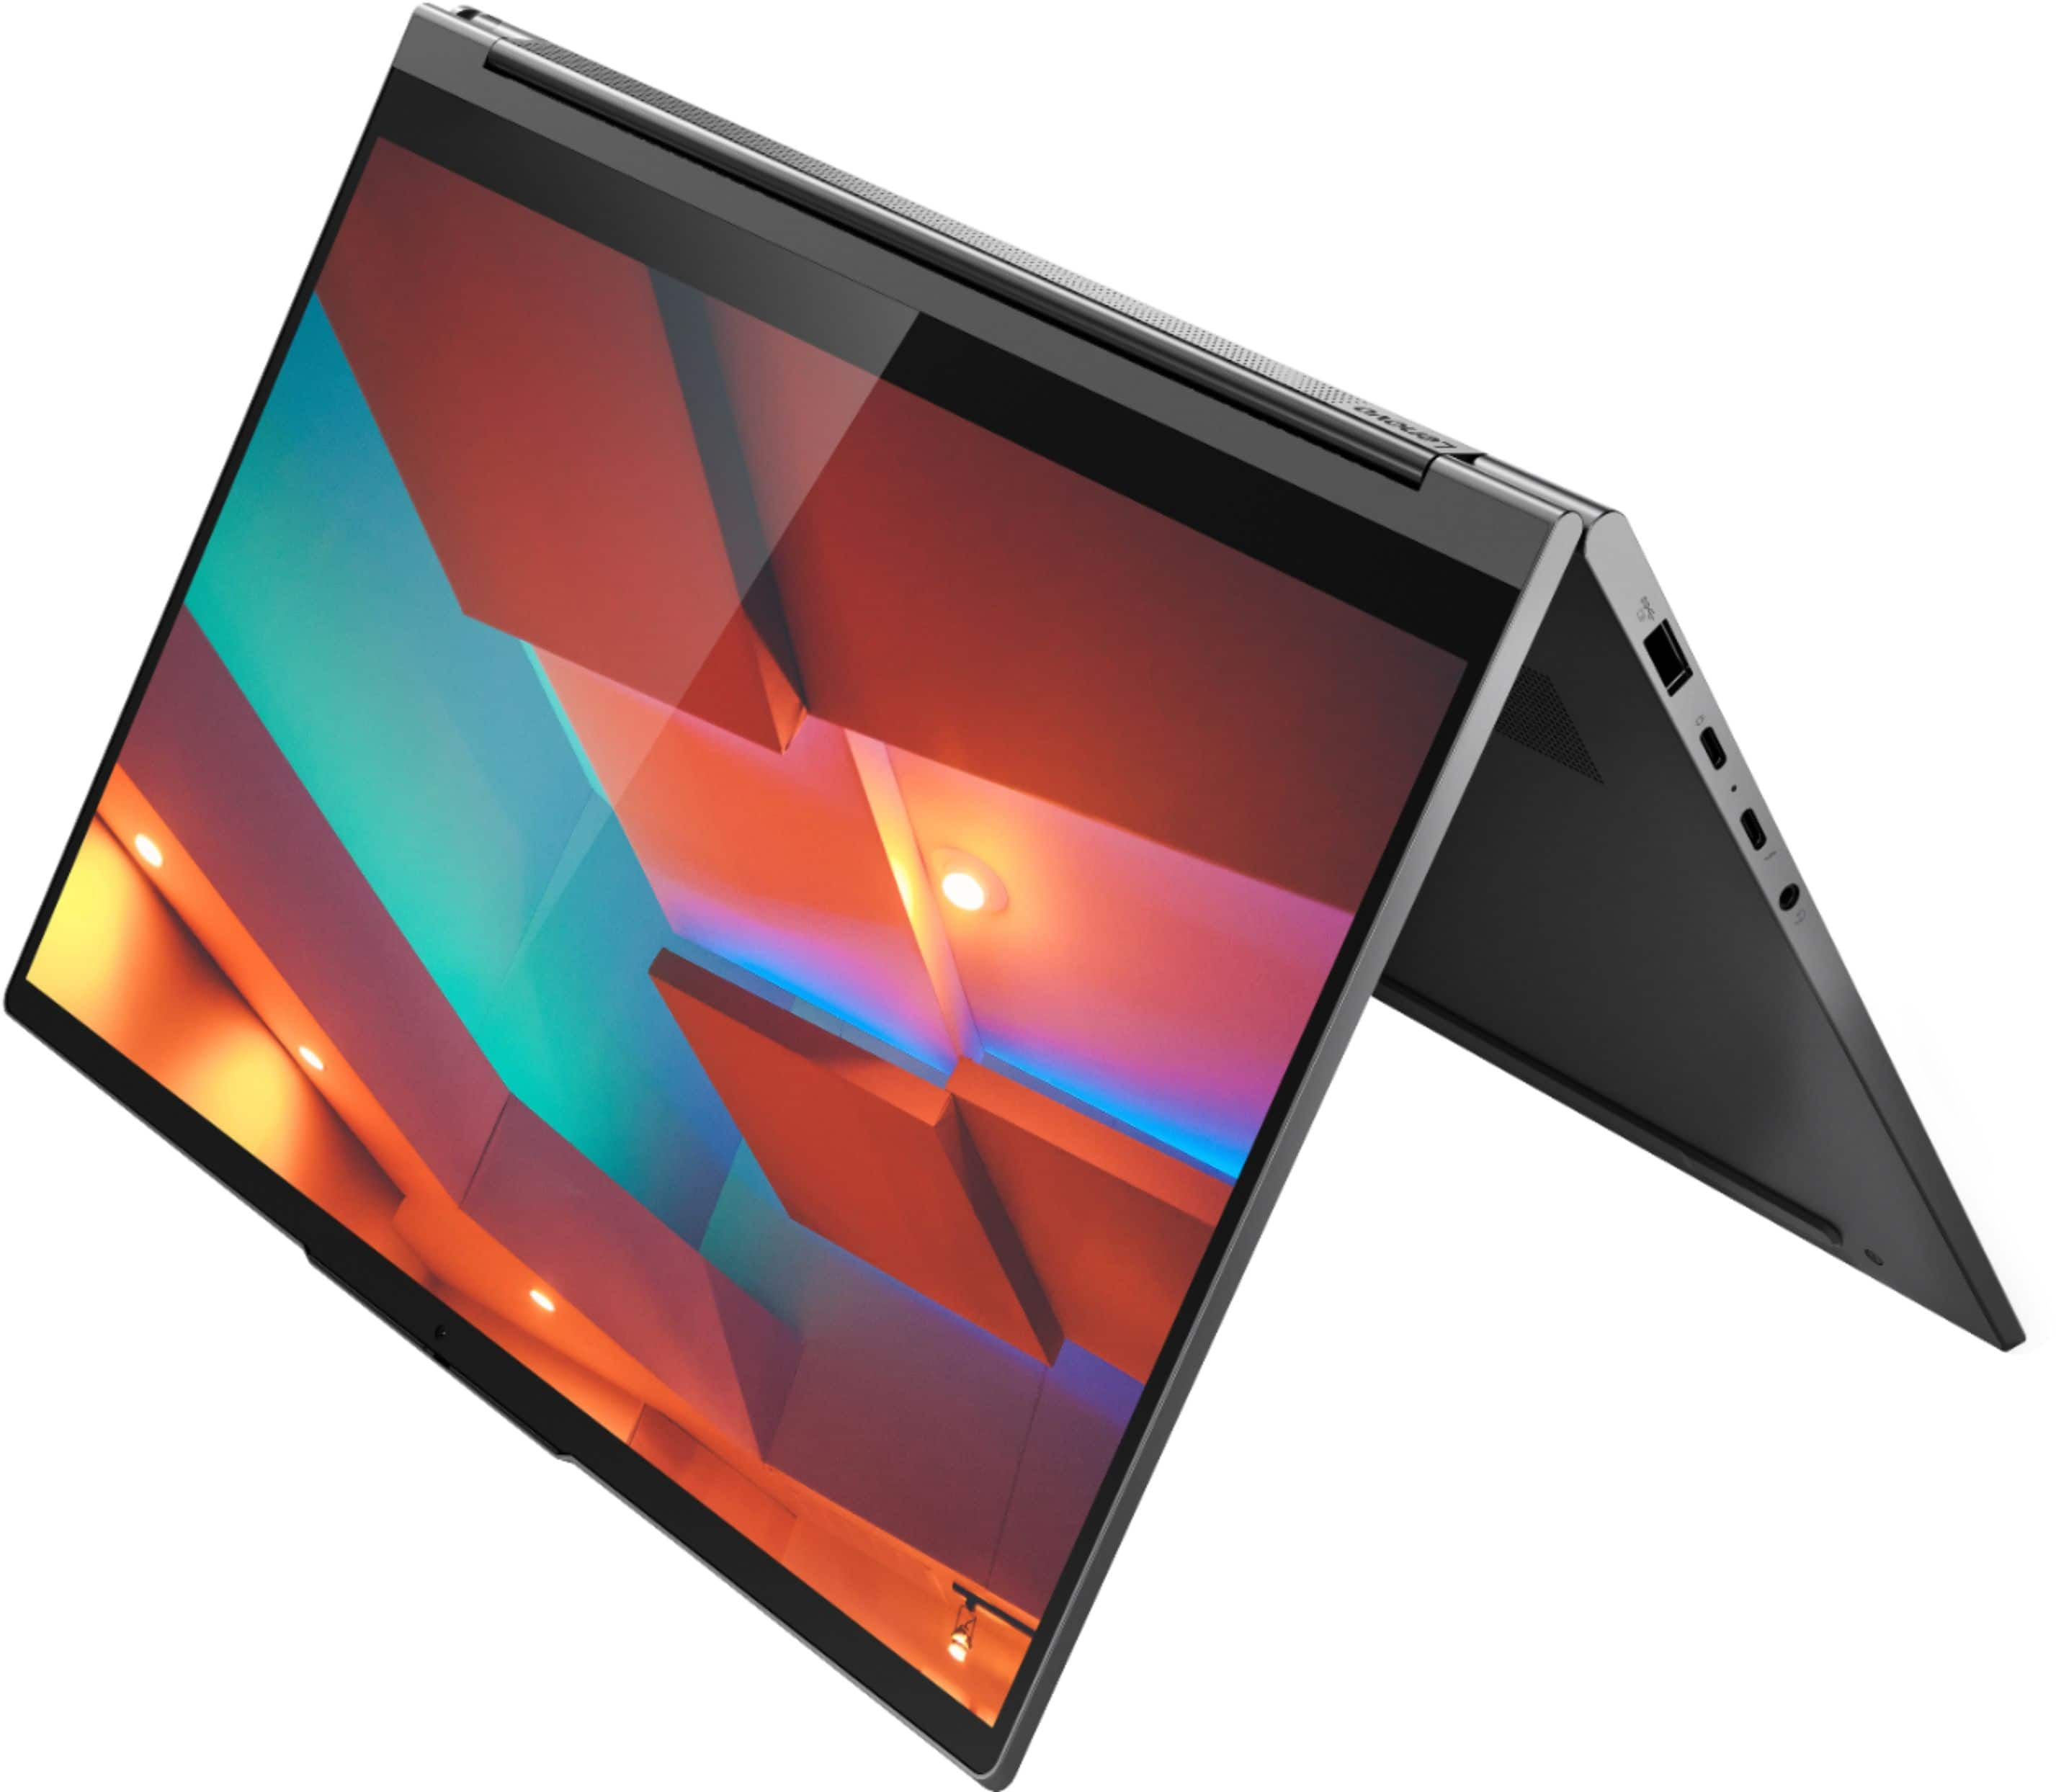 Lenovo Yoga C940 2 In 1 14 In Fhd Touch Screen Intel Core I7 1065g7 12gb Lp Ddr4 Memory 512gb Solid State Drive Iron Gray 81q9002gus Best Buy 1149 99 Slickdeals Net